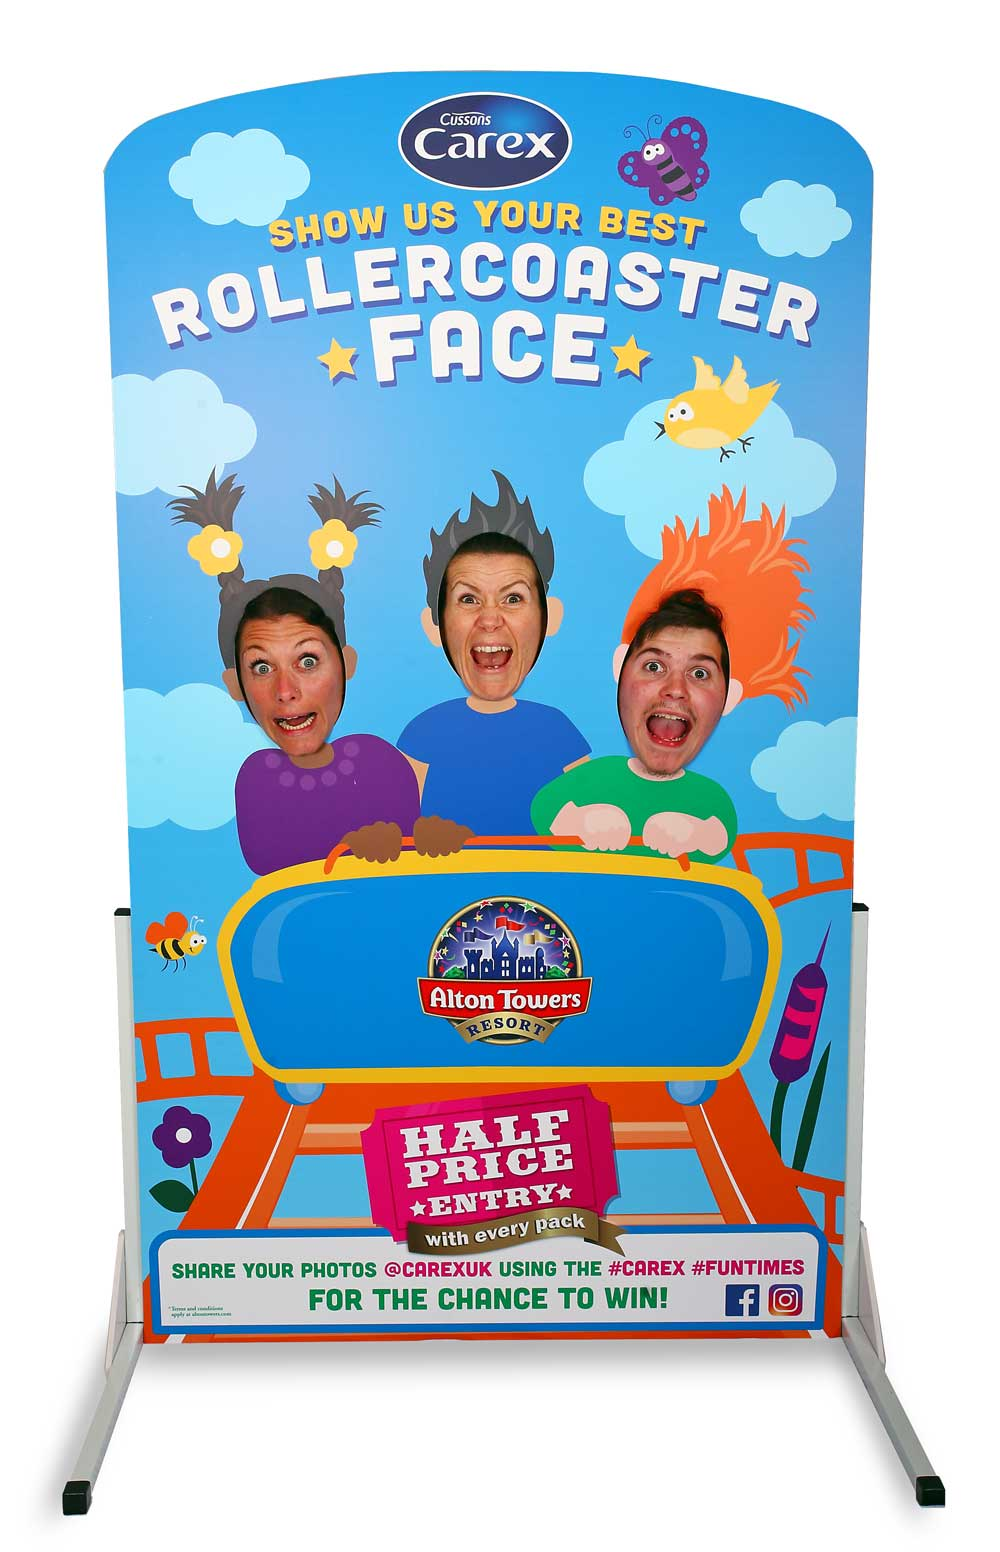 Rollercoaster face in the hole board